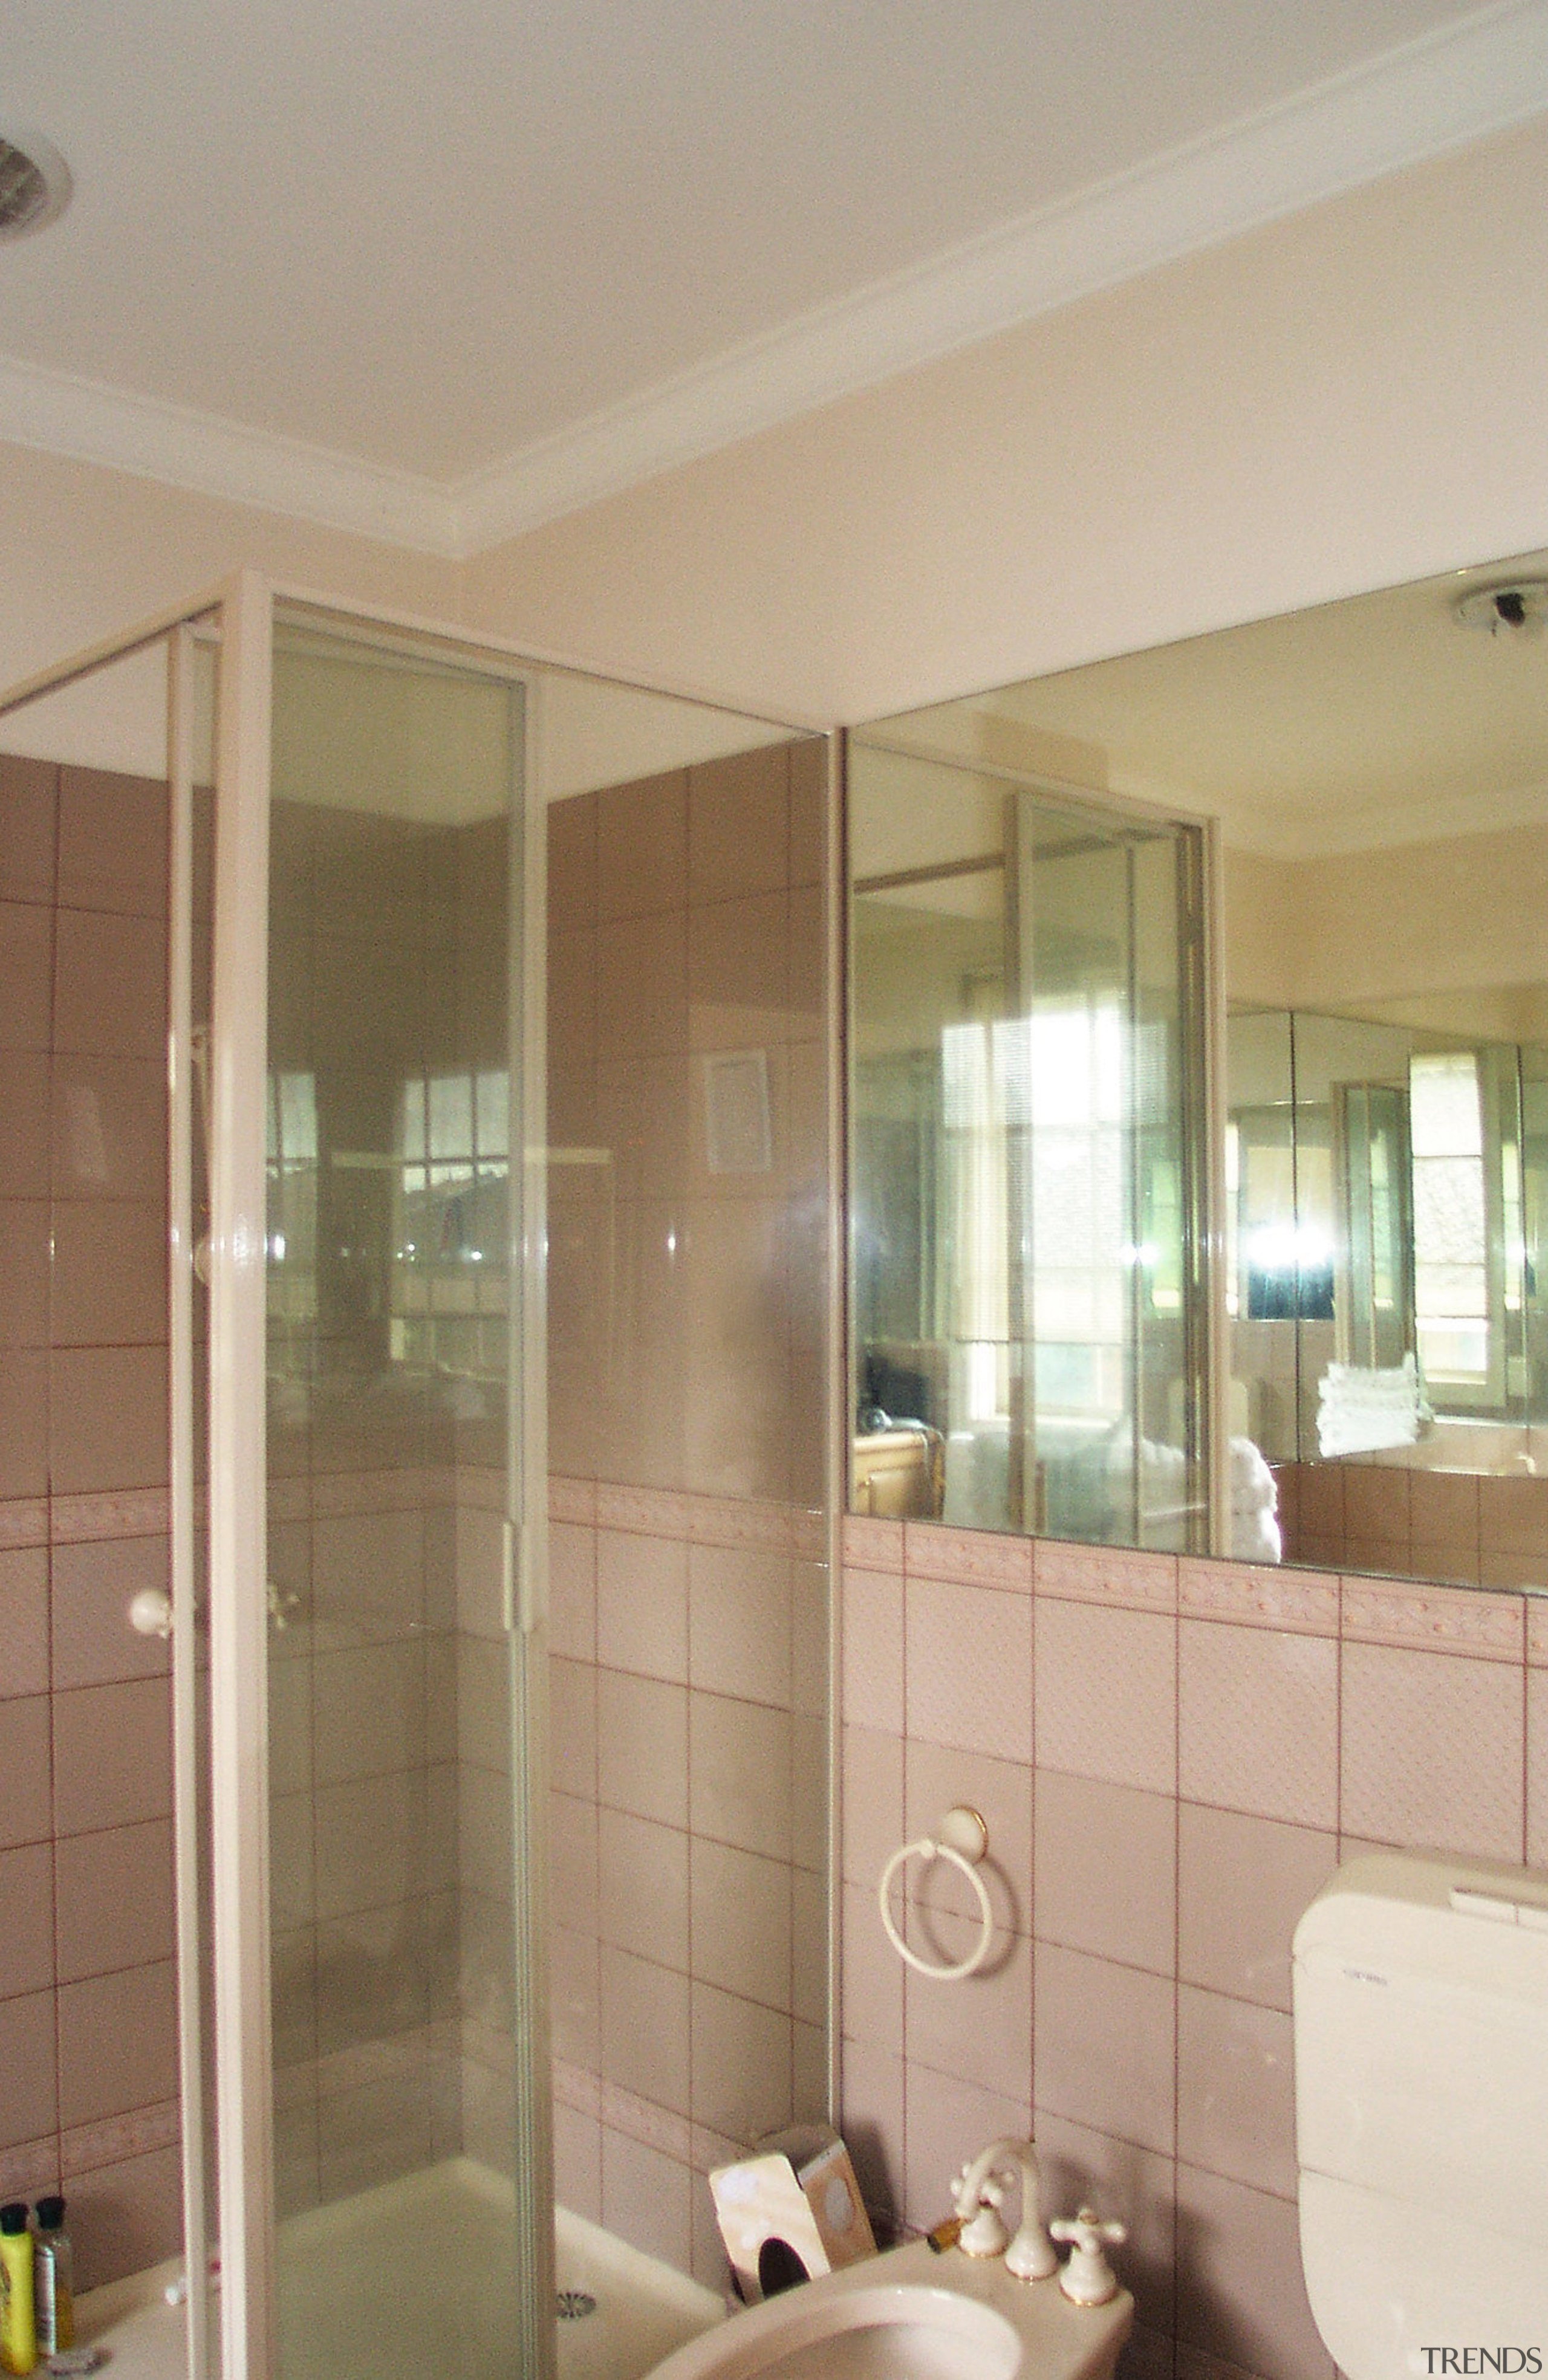 The Existing Shower Stall Wasremove Gallery 1 Trends